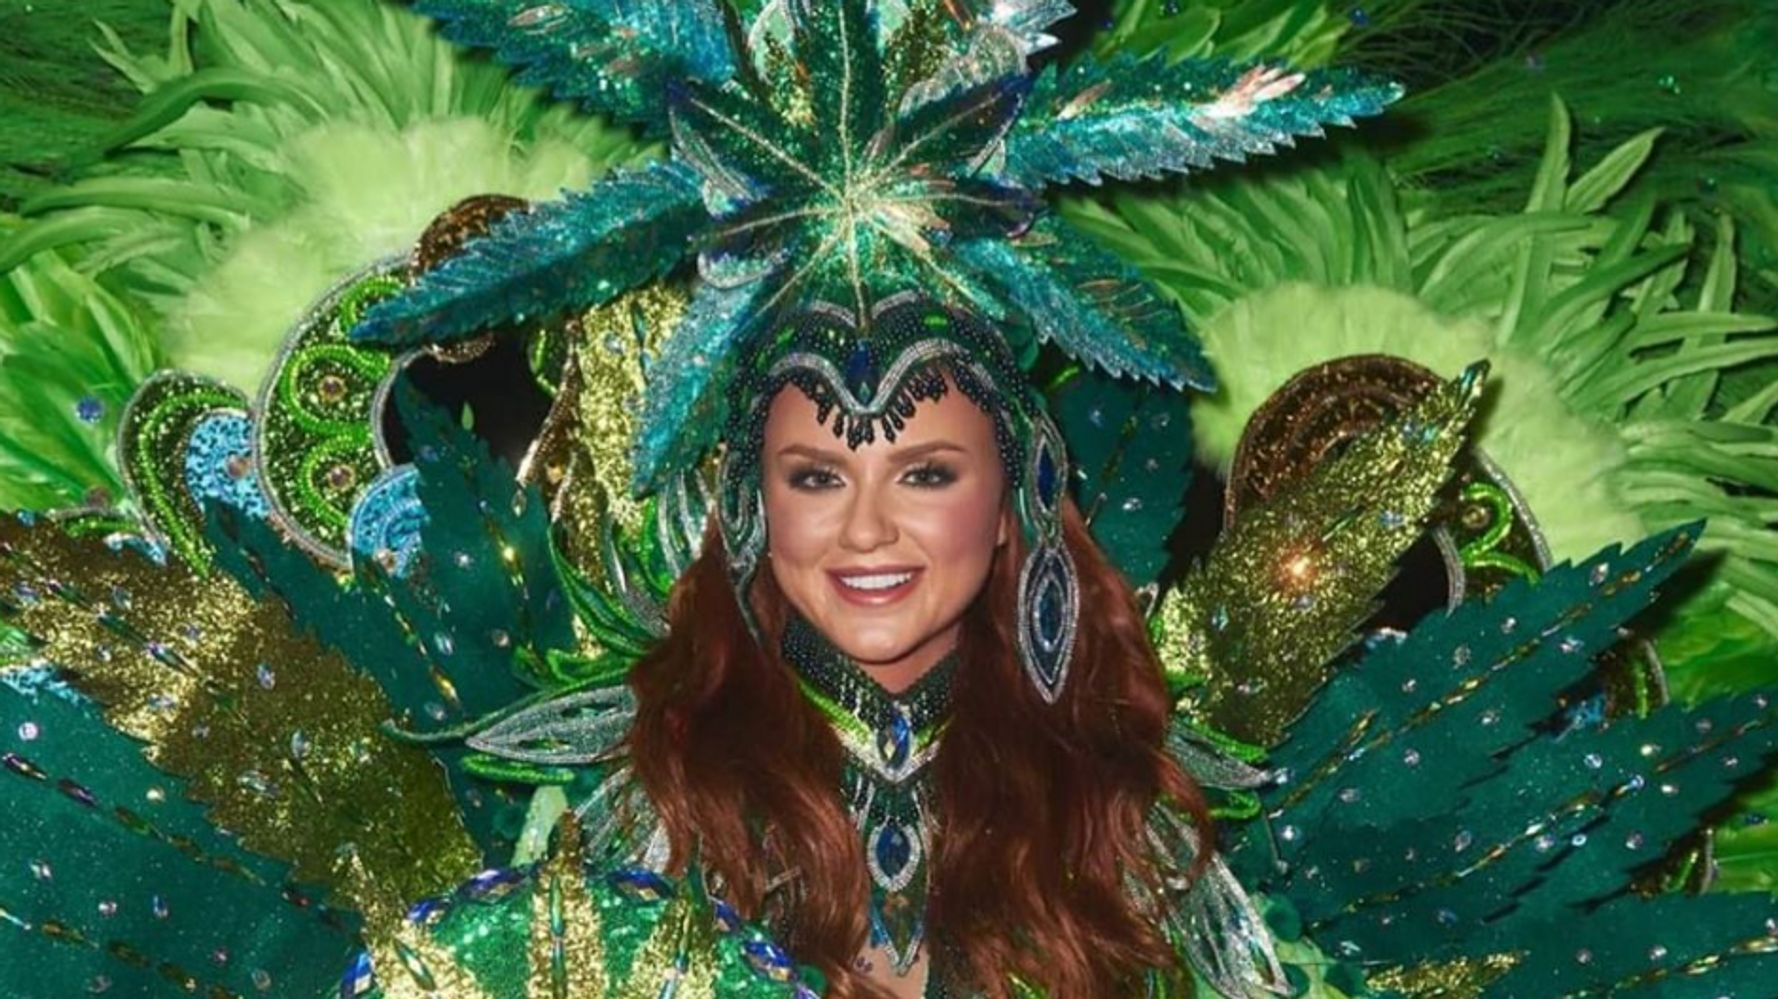 Miss Universe Canada Dressed Up As Legal Cannabis, Because Of Course